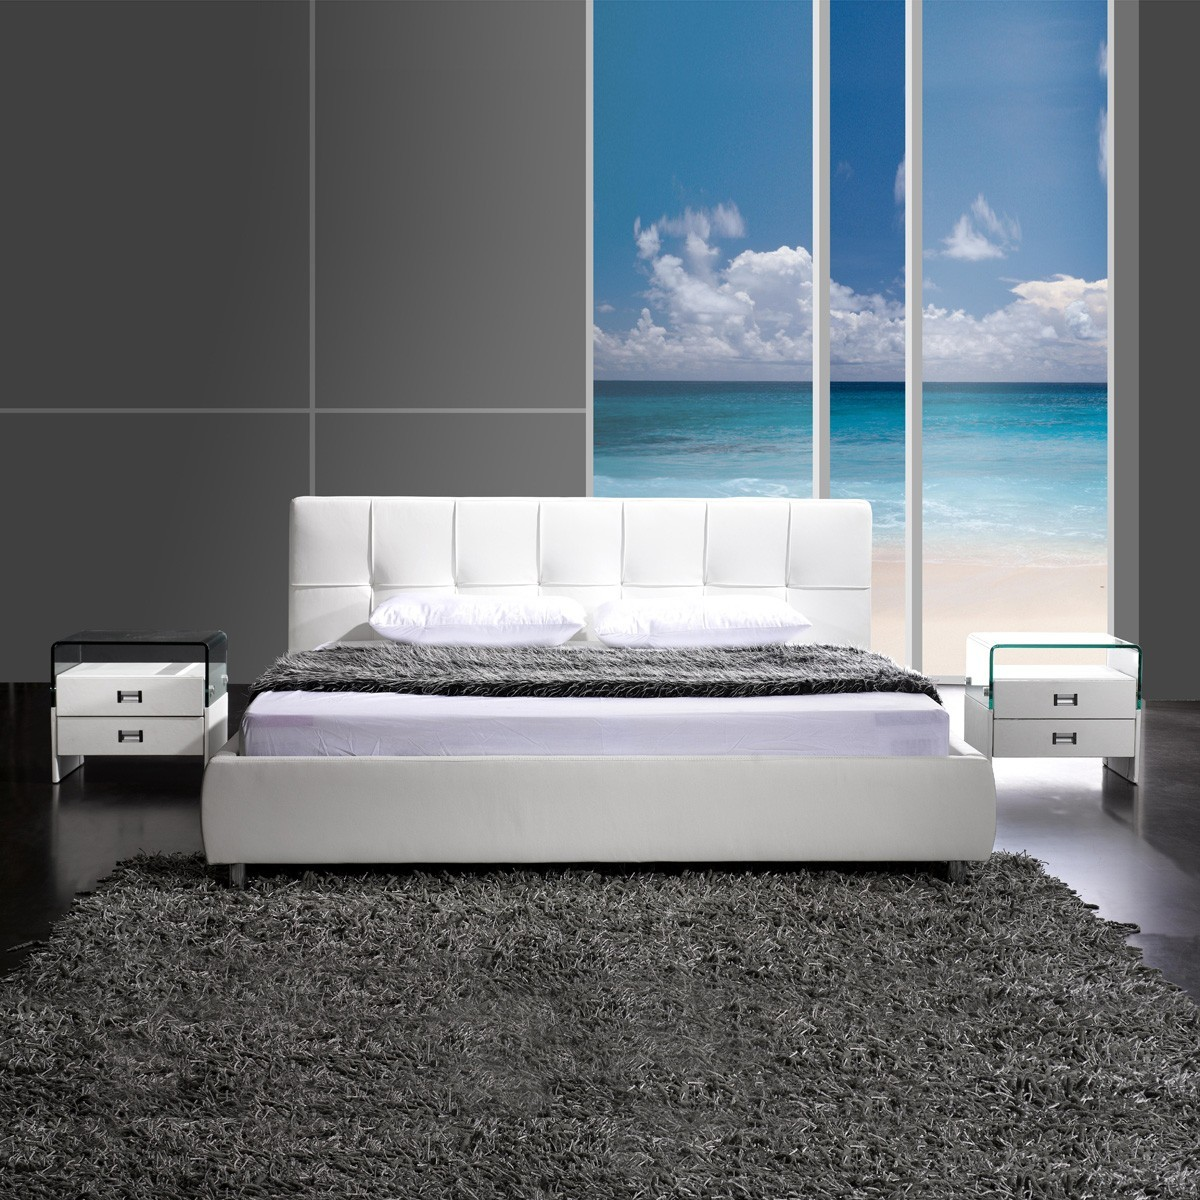 polsterbett doppelbett bett bettgestell 140x200 kunstleder wei ebay. Black Bedroom Furniture Sets. Home Design Ideas